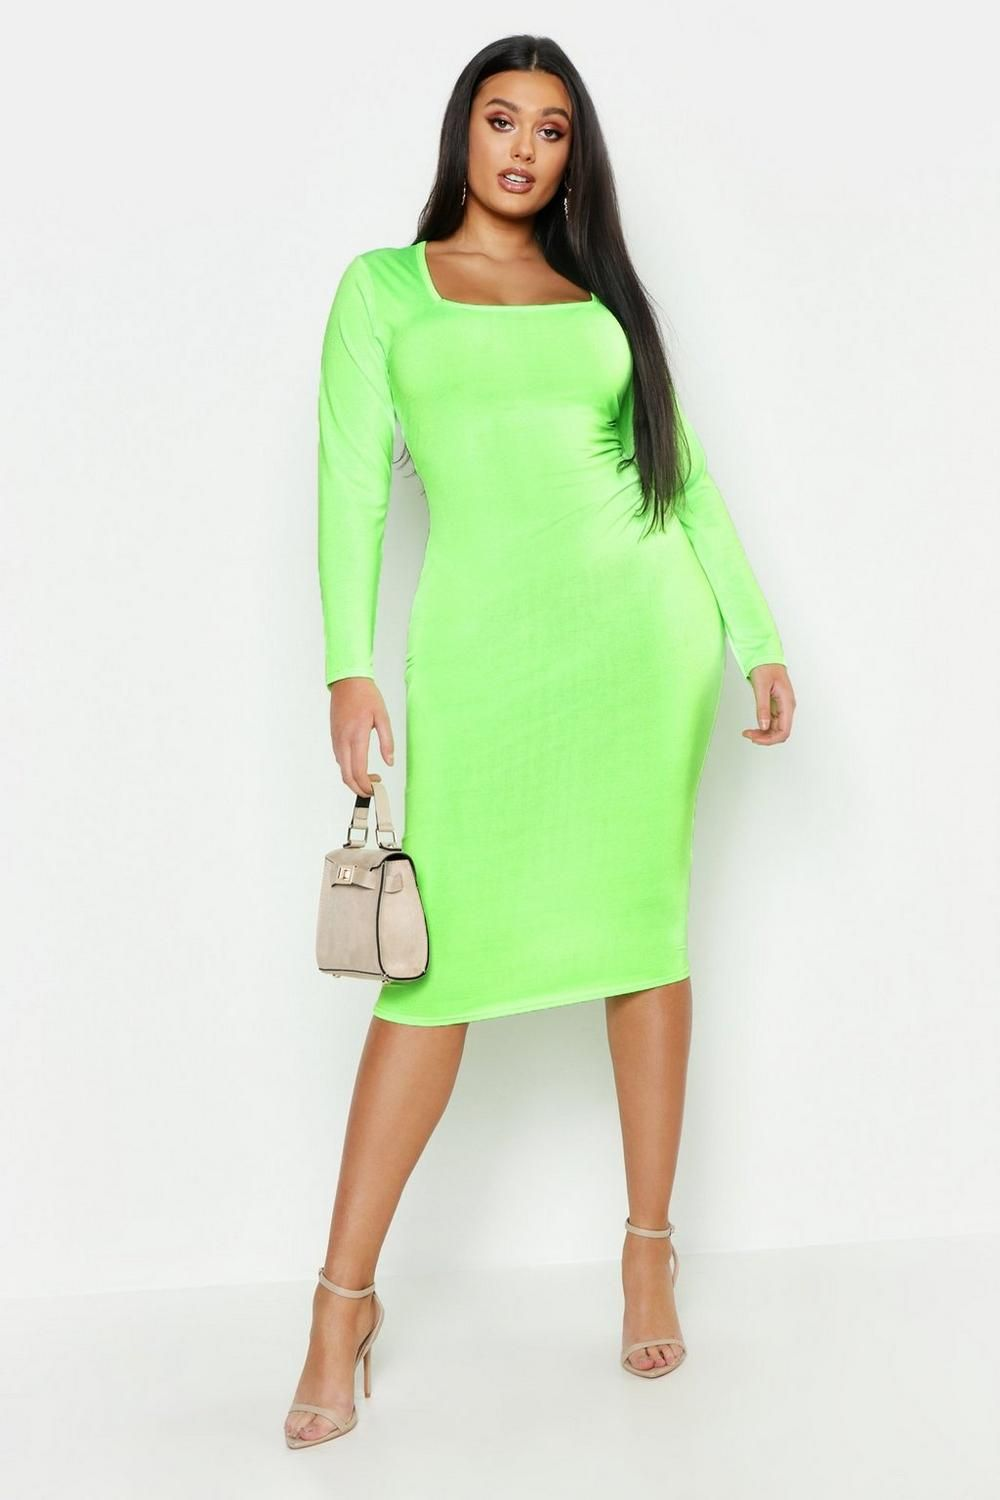 Pin on Trendy Plus Size Fashion